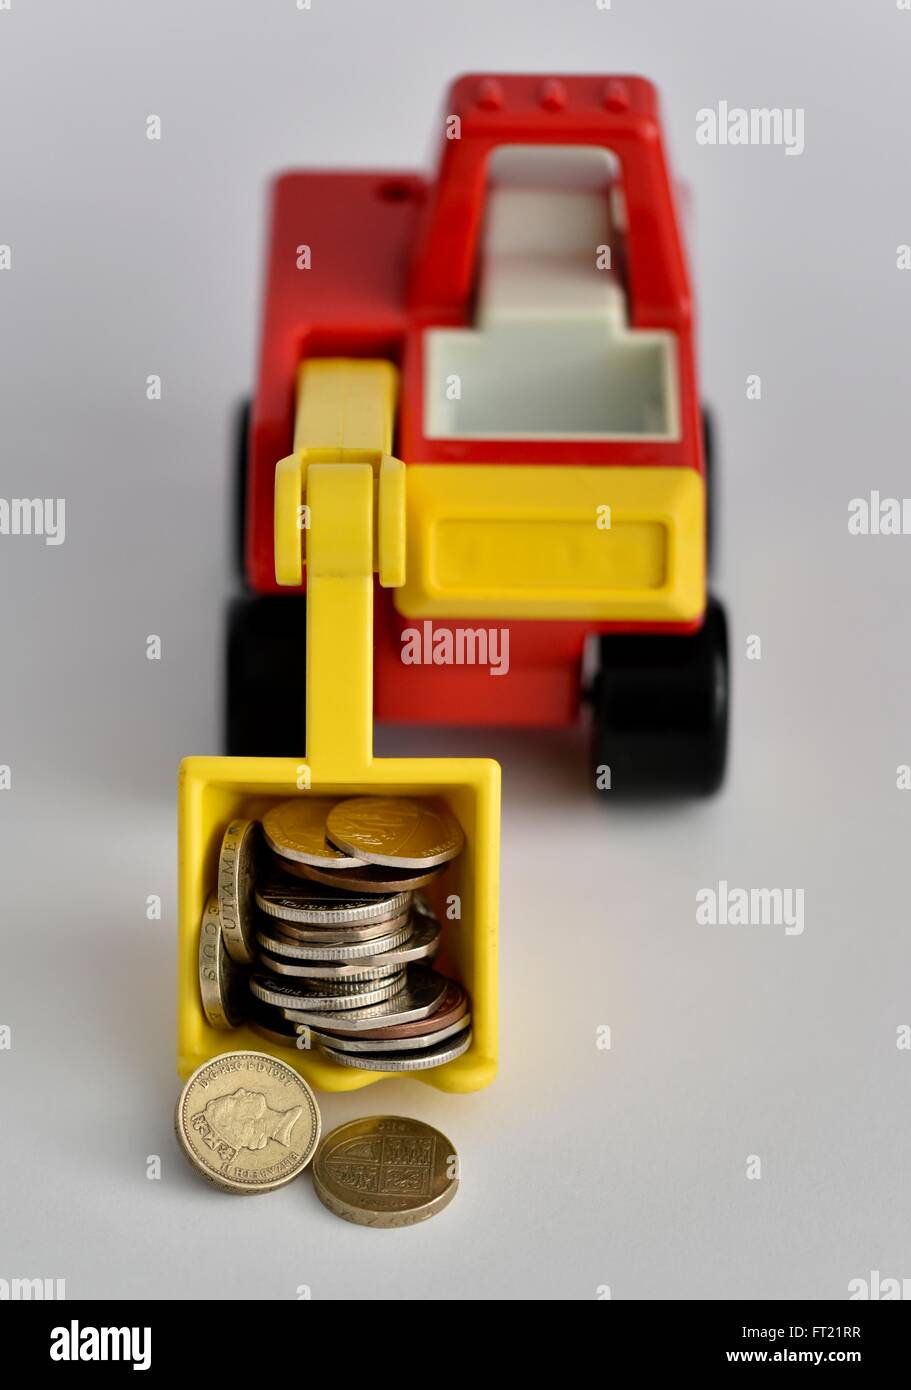 A toy digger carrying coins Stock Photo